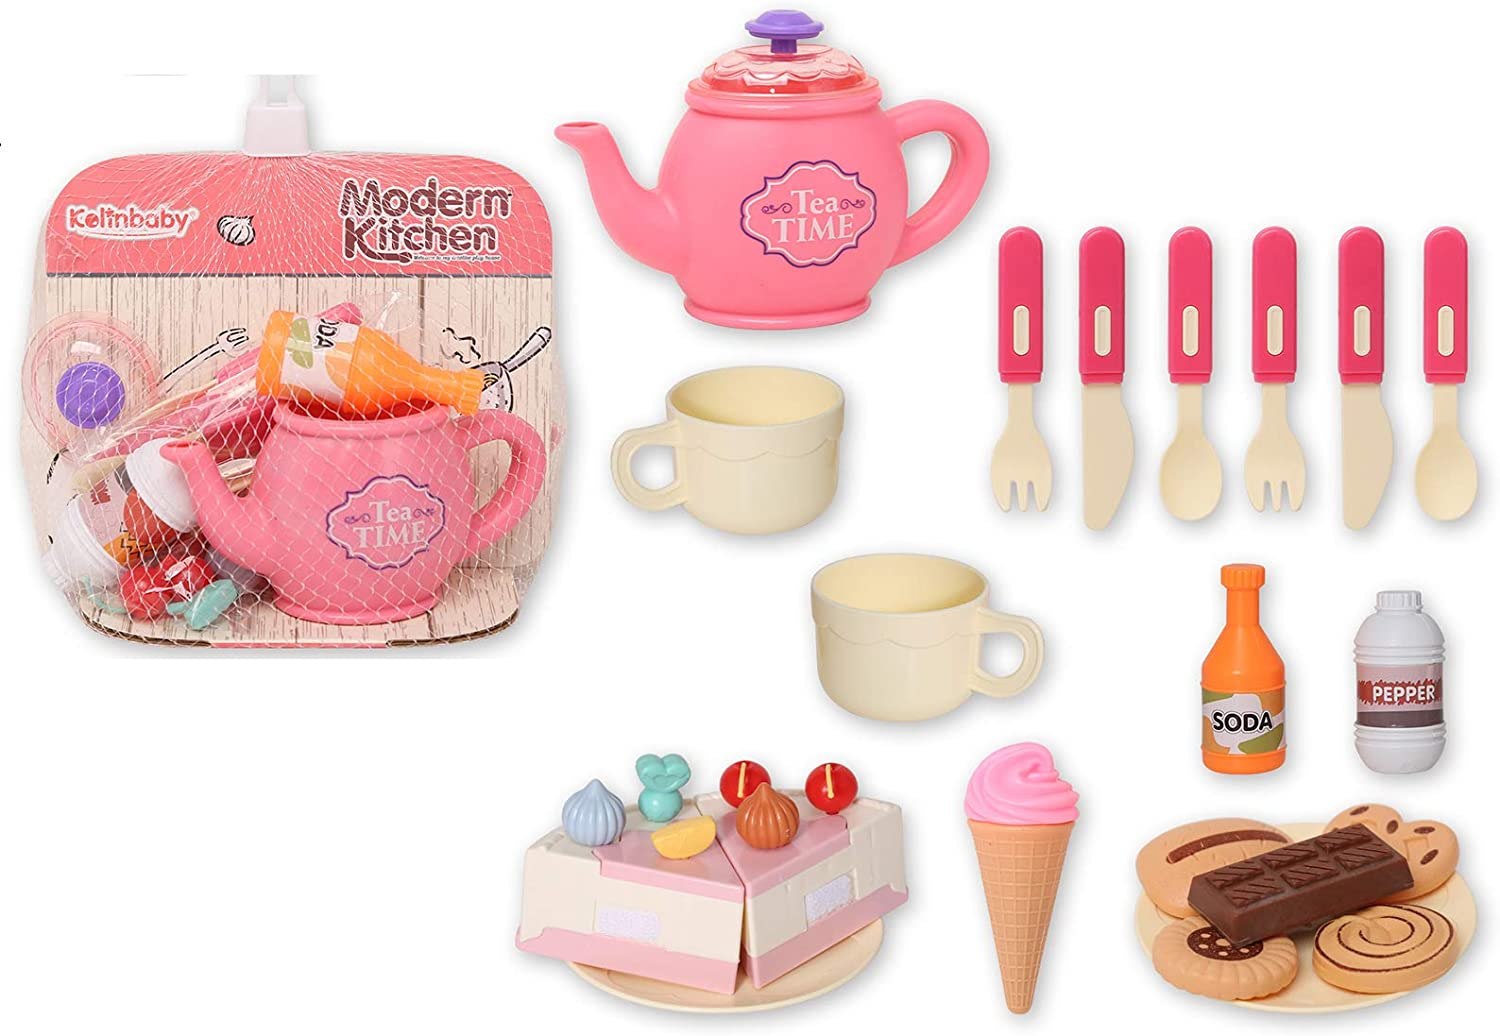 Little Bado 28-Pieces Play Kitchen Toy,Afternoon Tea Party Set,DIY Cake,Cutting Play Food for Toddler Kid Boys Girls,Pretend Food Educational Toy as Birthday